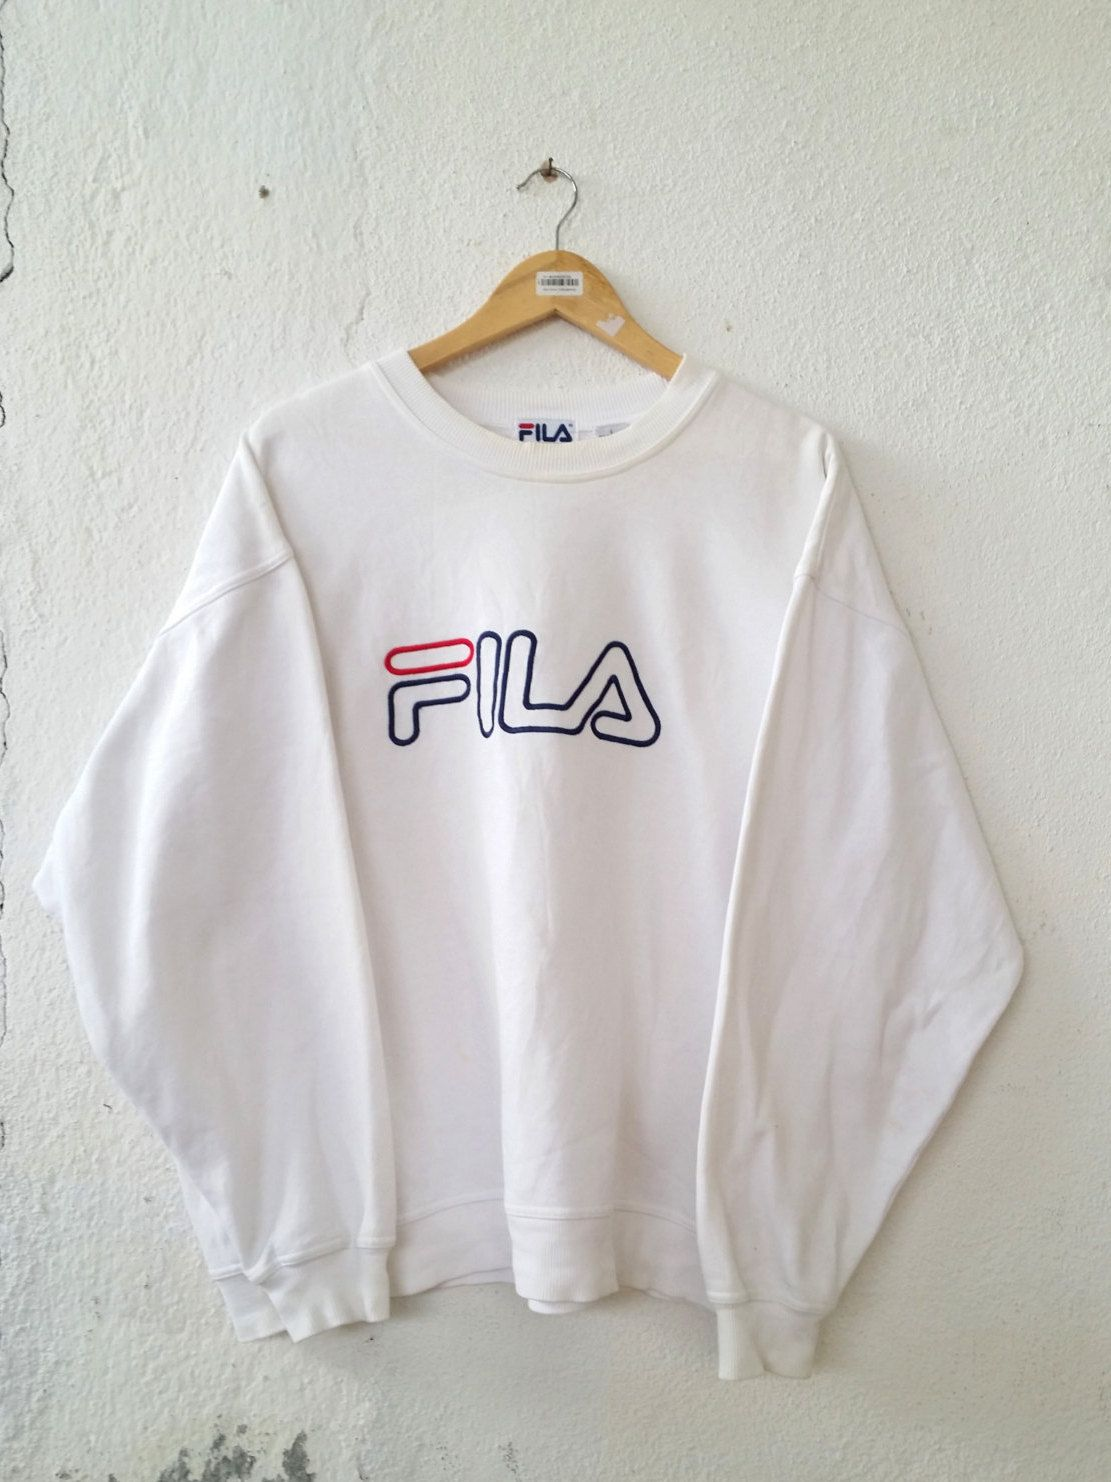 51c7d39e22738 Vintage 90's FILA Roundneck Sweatshirt with Big Logo Spell Out Embroidered  Sweater Jumper Pullover Swag Streetwear Adult size L VSS146 by  fiestorevintage on ...